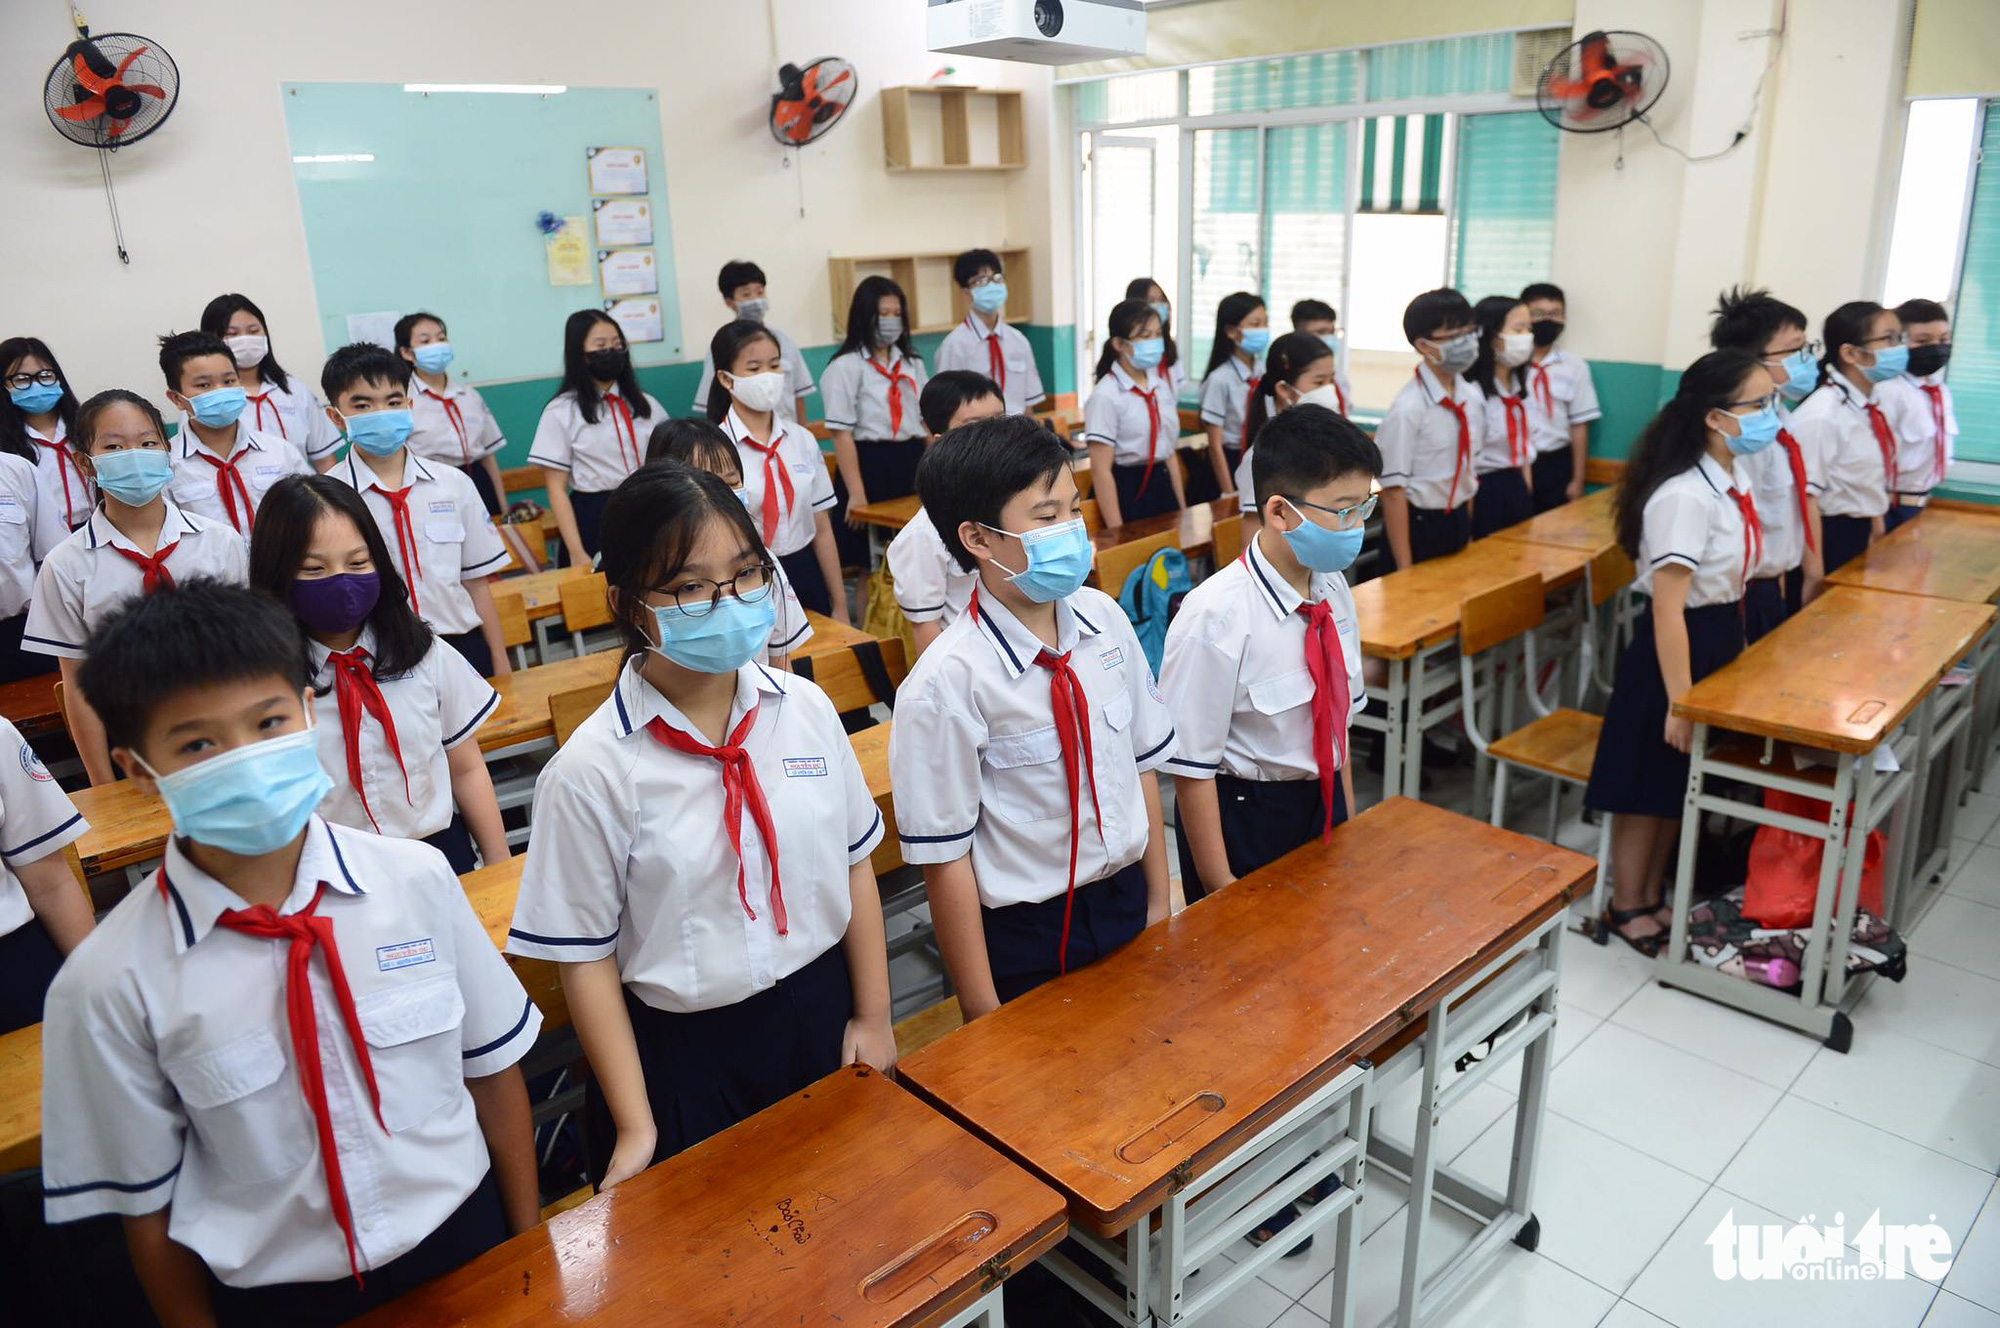 Students attend the flag salute ceremony inside a classroom at Nguyen Du Middle School in District 1, Ho Chi Minh City, March 1, 2021. Photo: Quang Dinh / Tuoi Tre